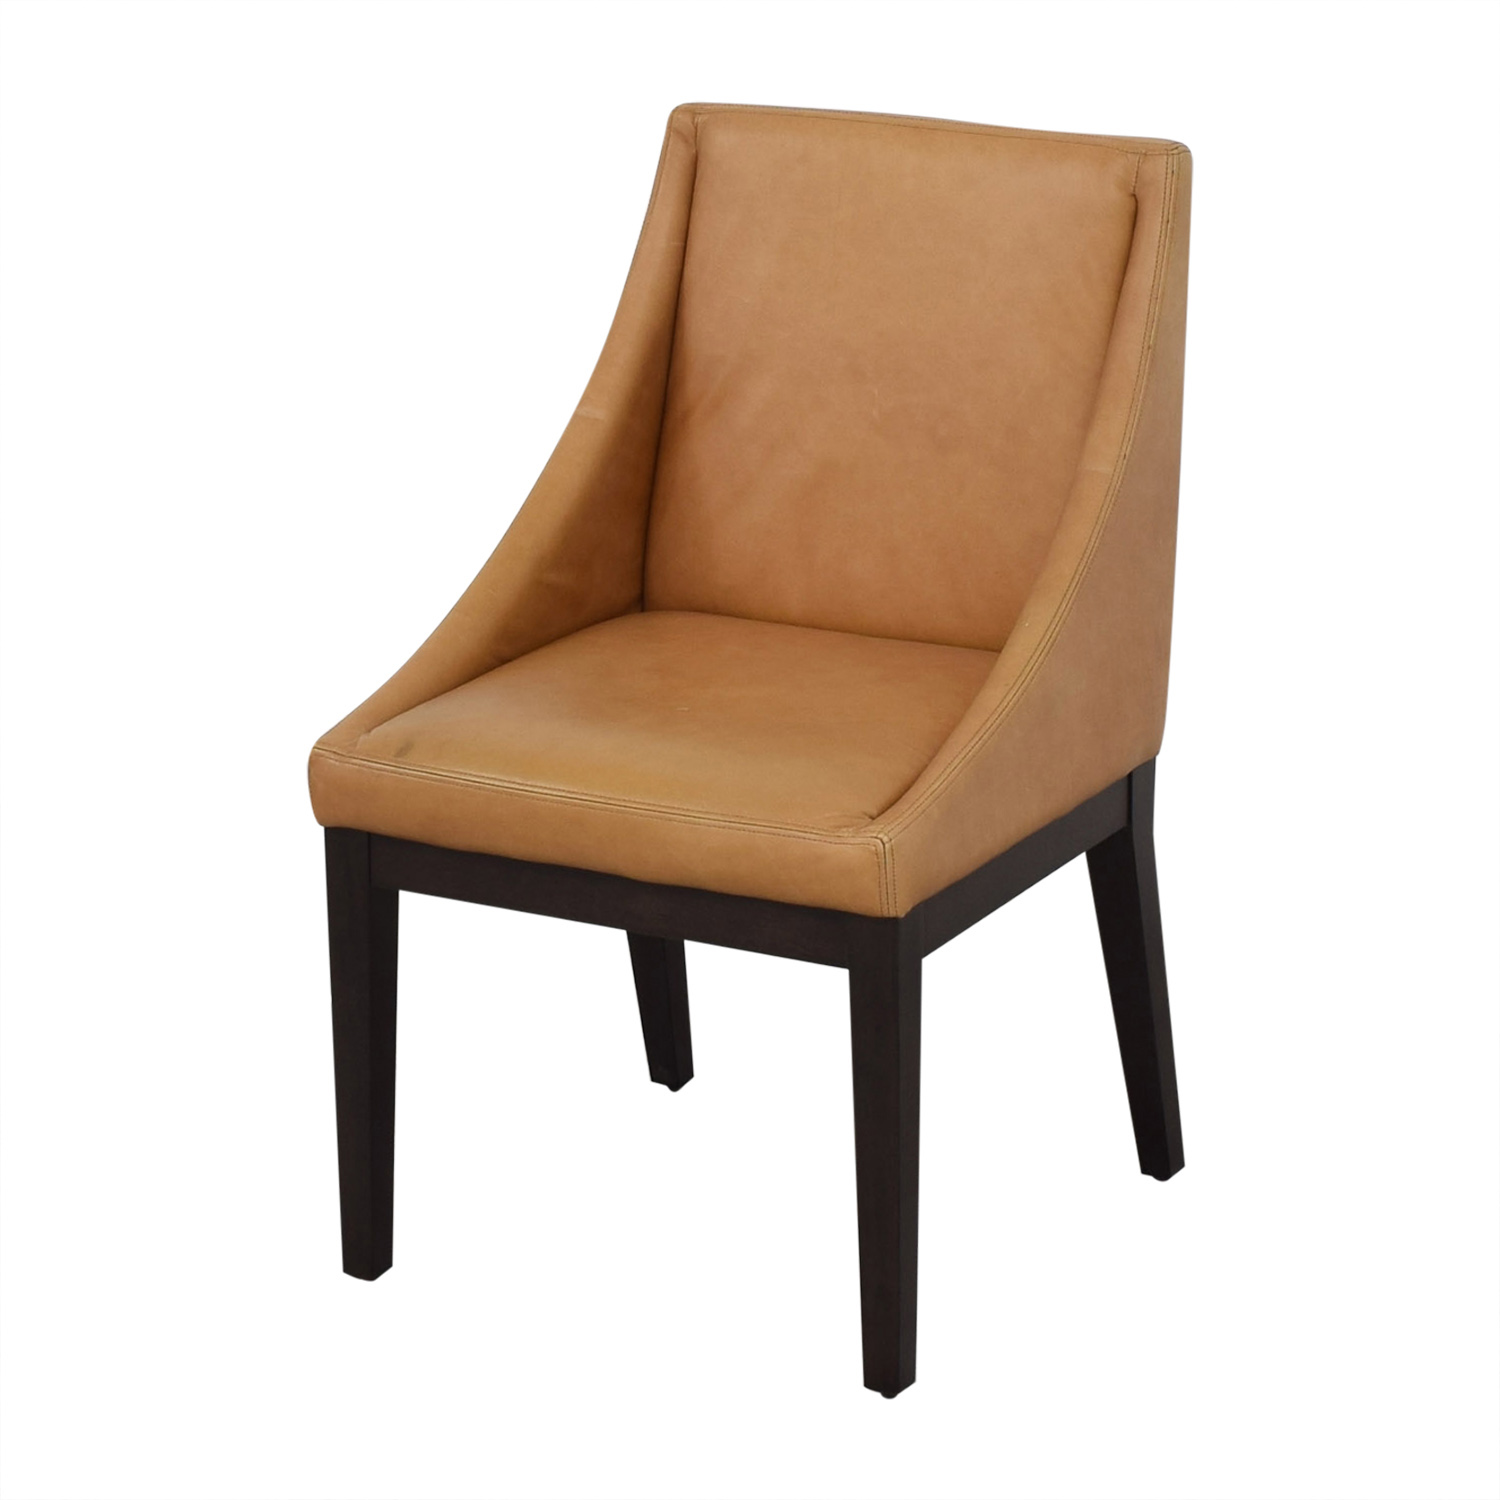 West Elm West Elm Curved Leather Chairs brown